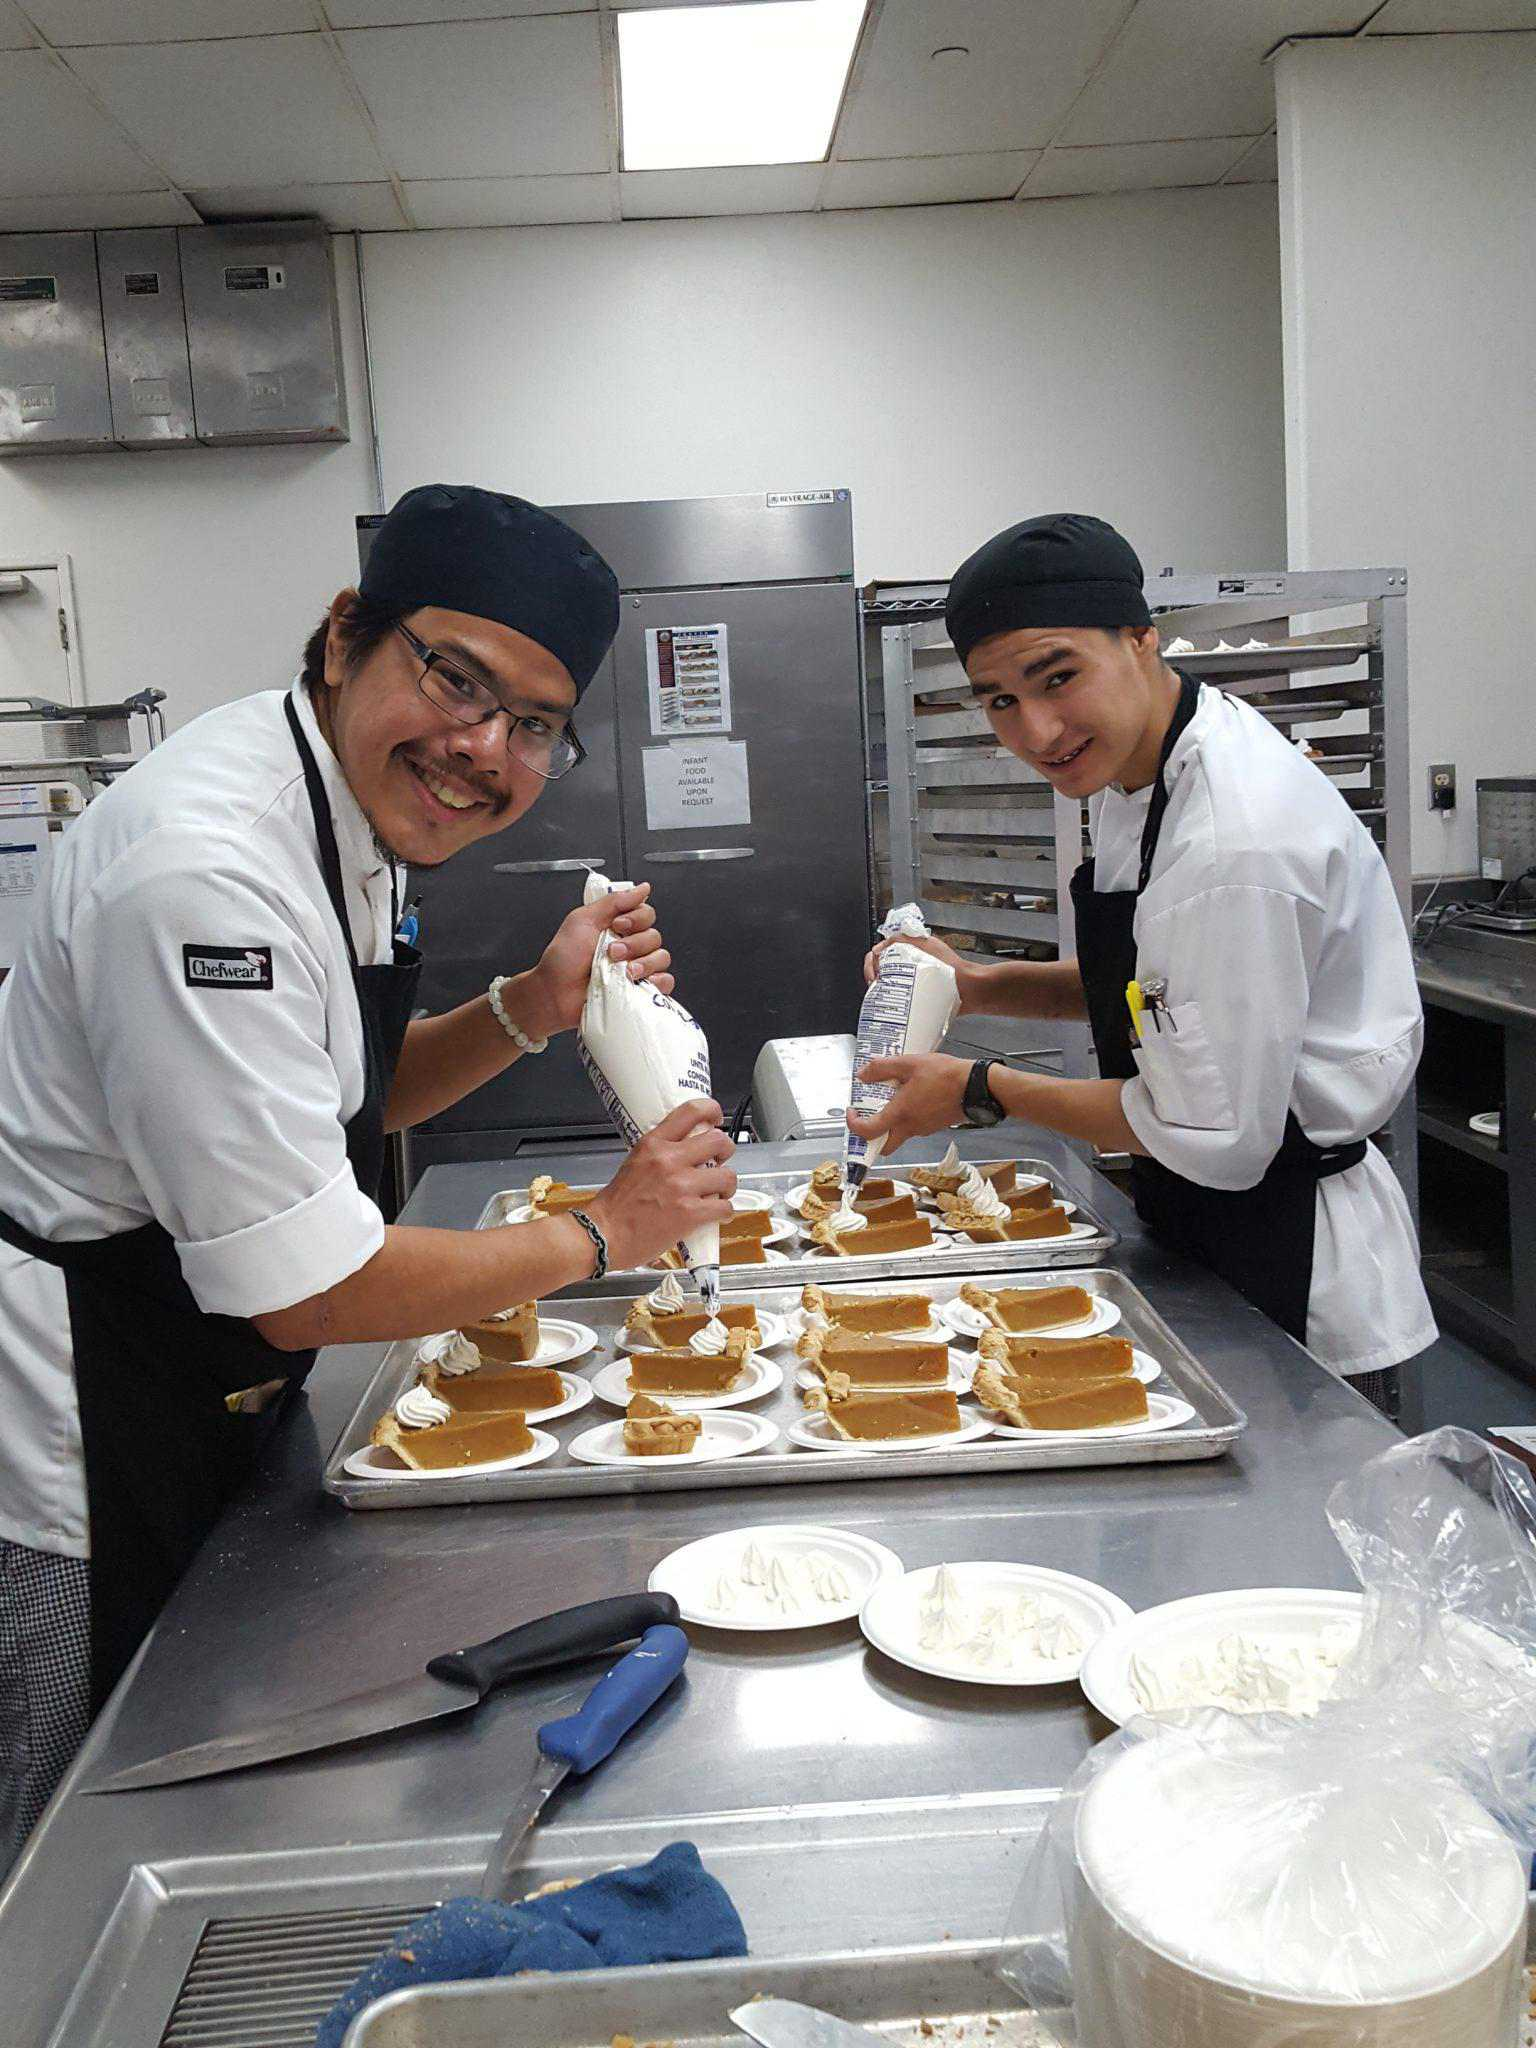 culinary arts program trains members for careers as professional chefs brandon george and enrique worked diligently 8 hours a day monday through friday from to under the guidance of their instructor to